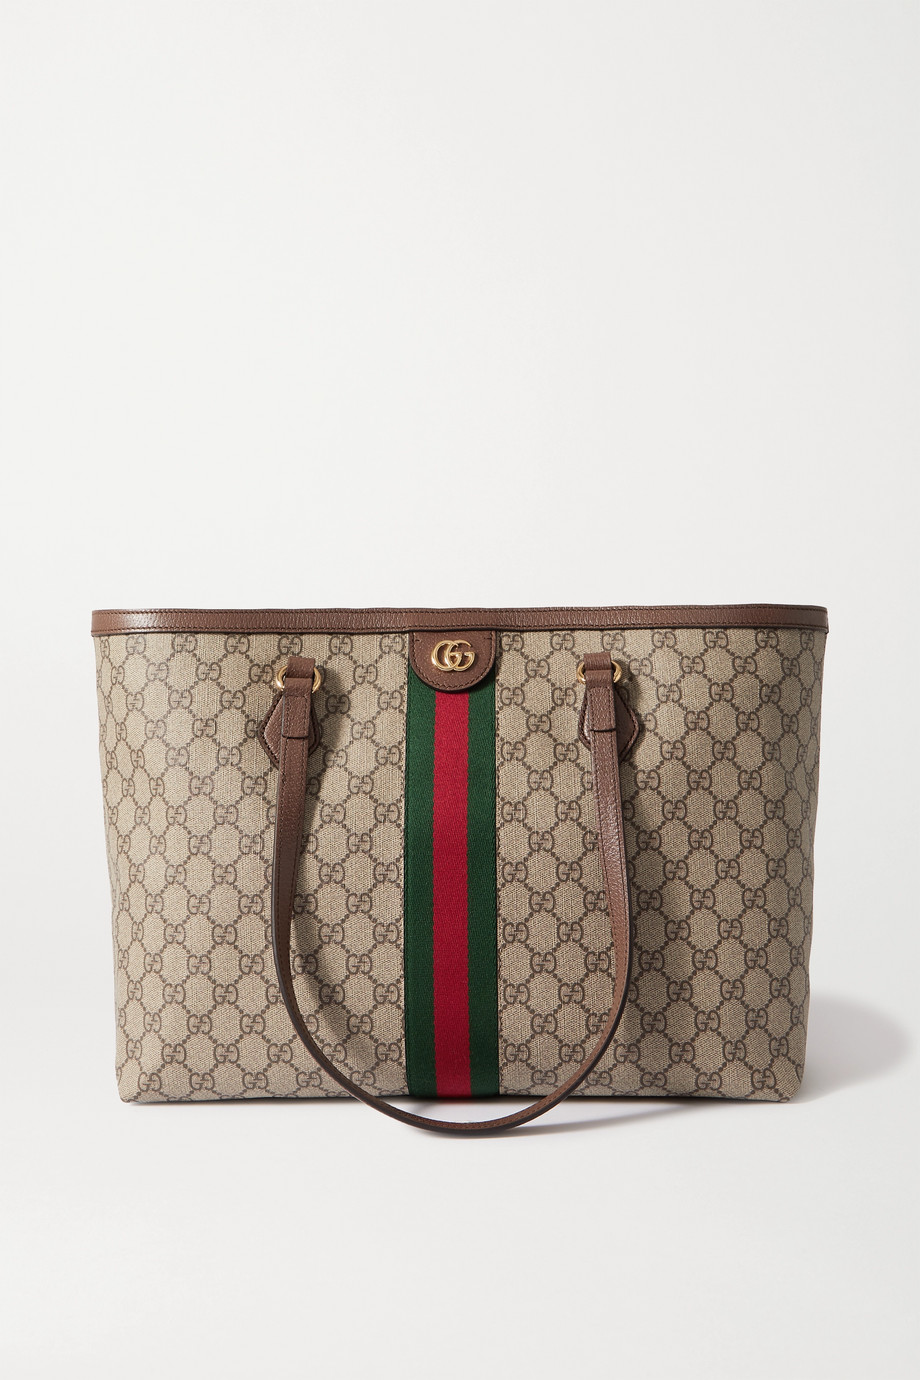 Gucci Sac à main en toile enduite imprimée à finitions en cuir texturé Ophidia Medium